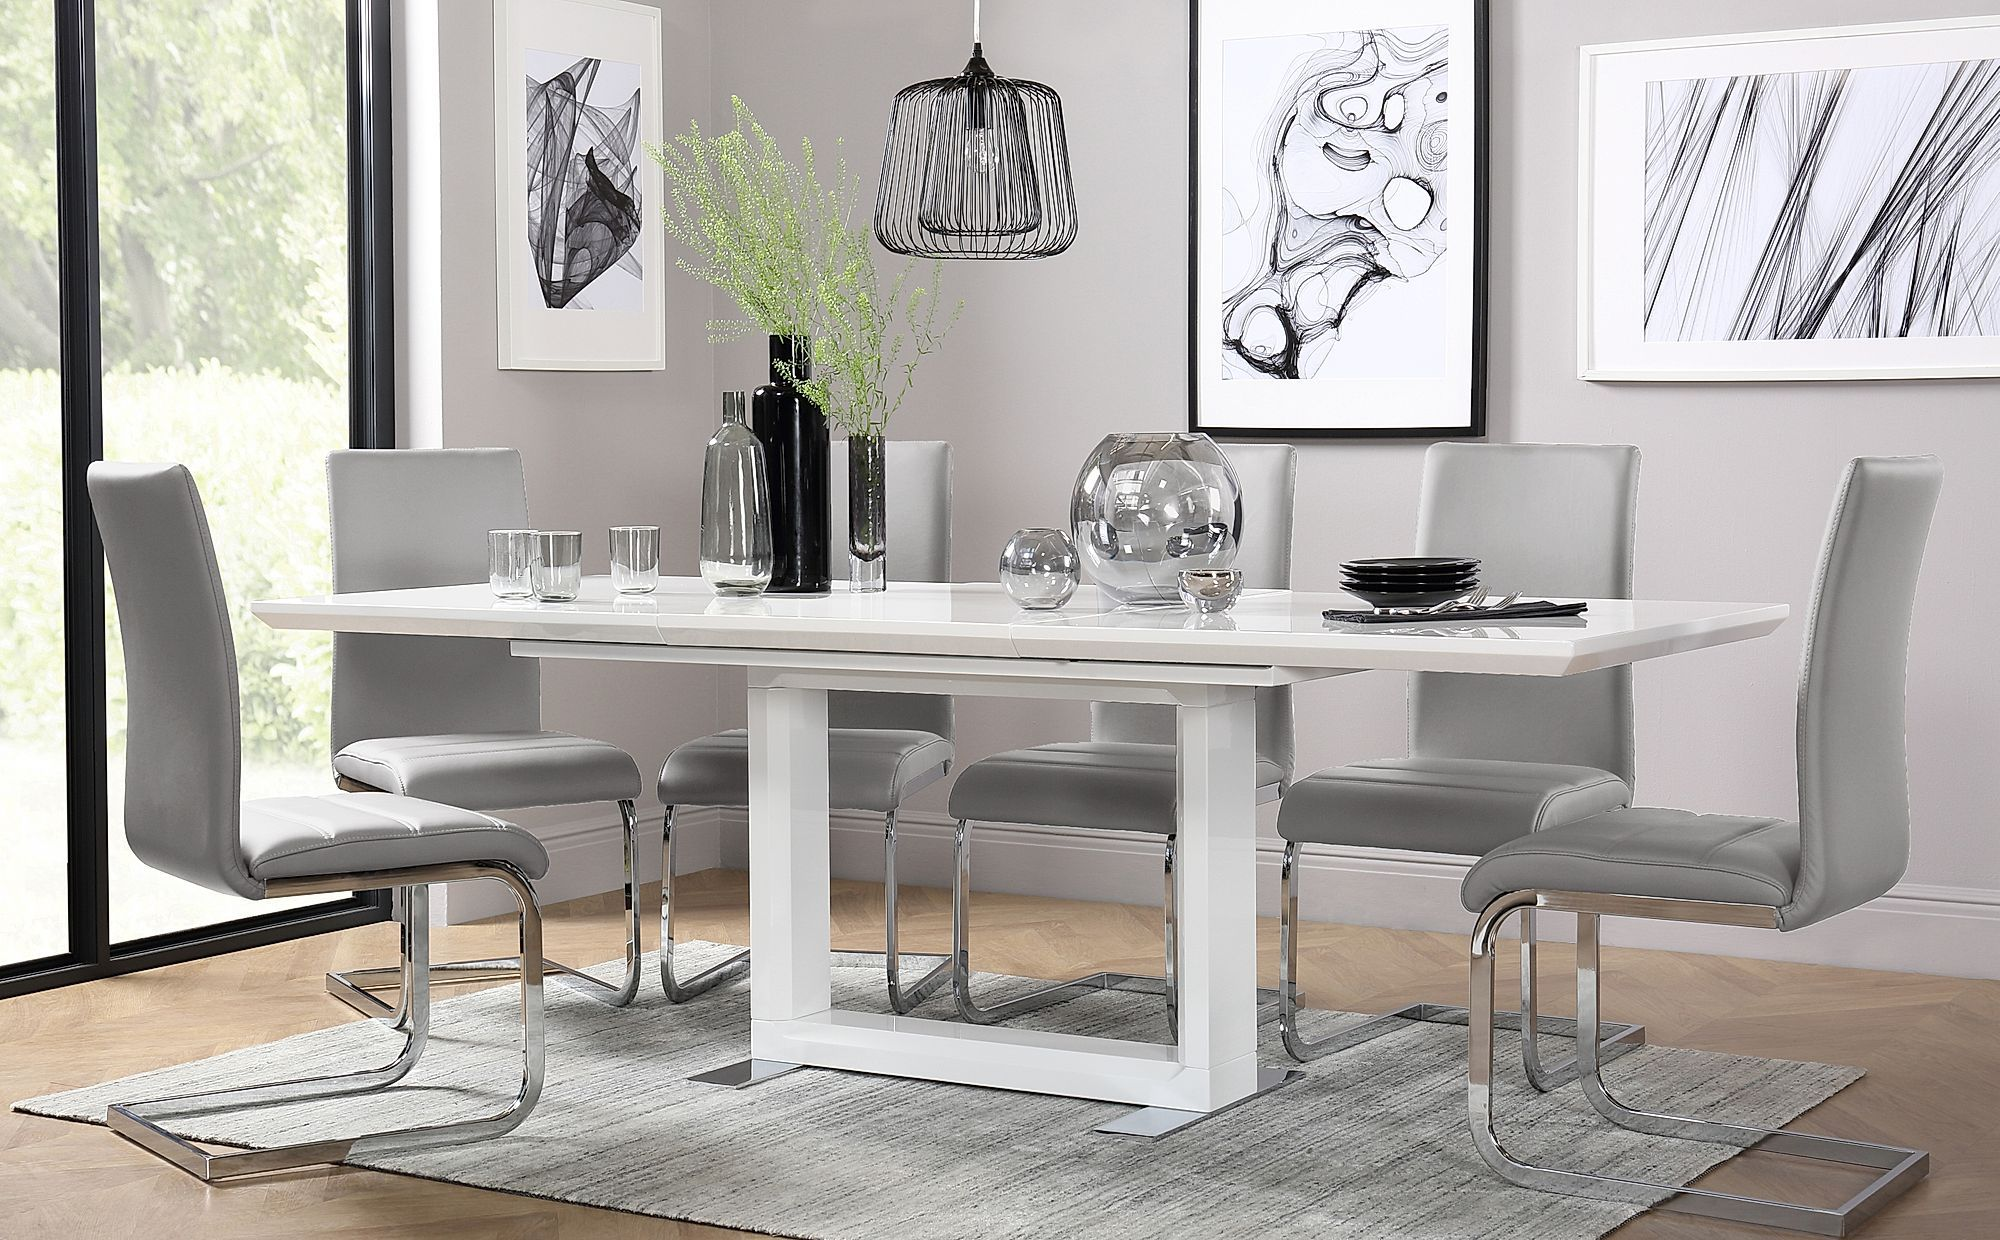 Tokyo White High Gloss Extending Dining Table With 6 Perth Light Grey Leather Chairs Round Extendable Dining Table Extendable Dining Table Dining Table